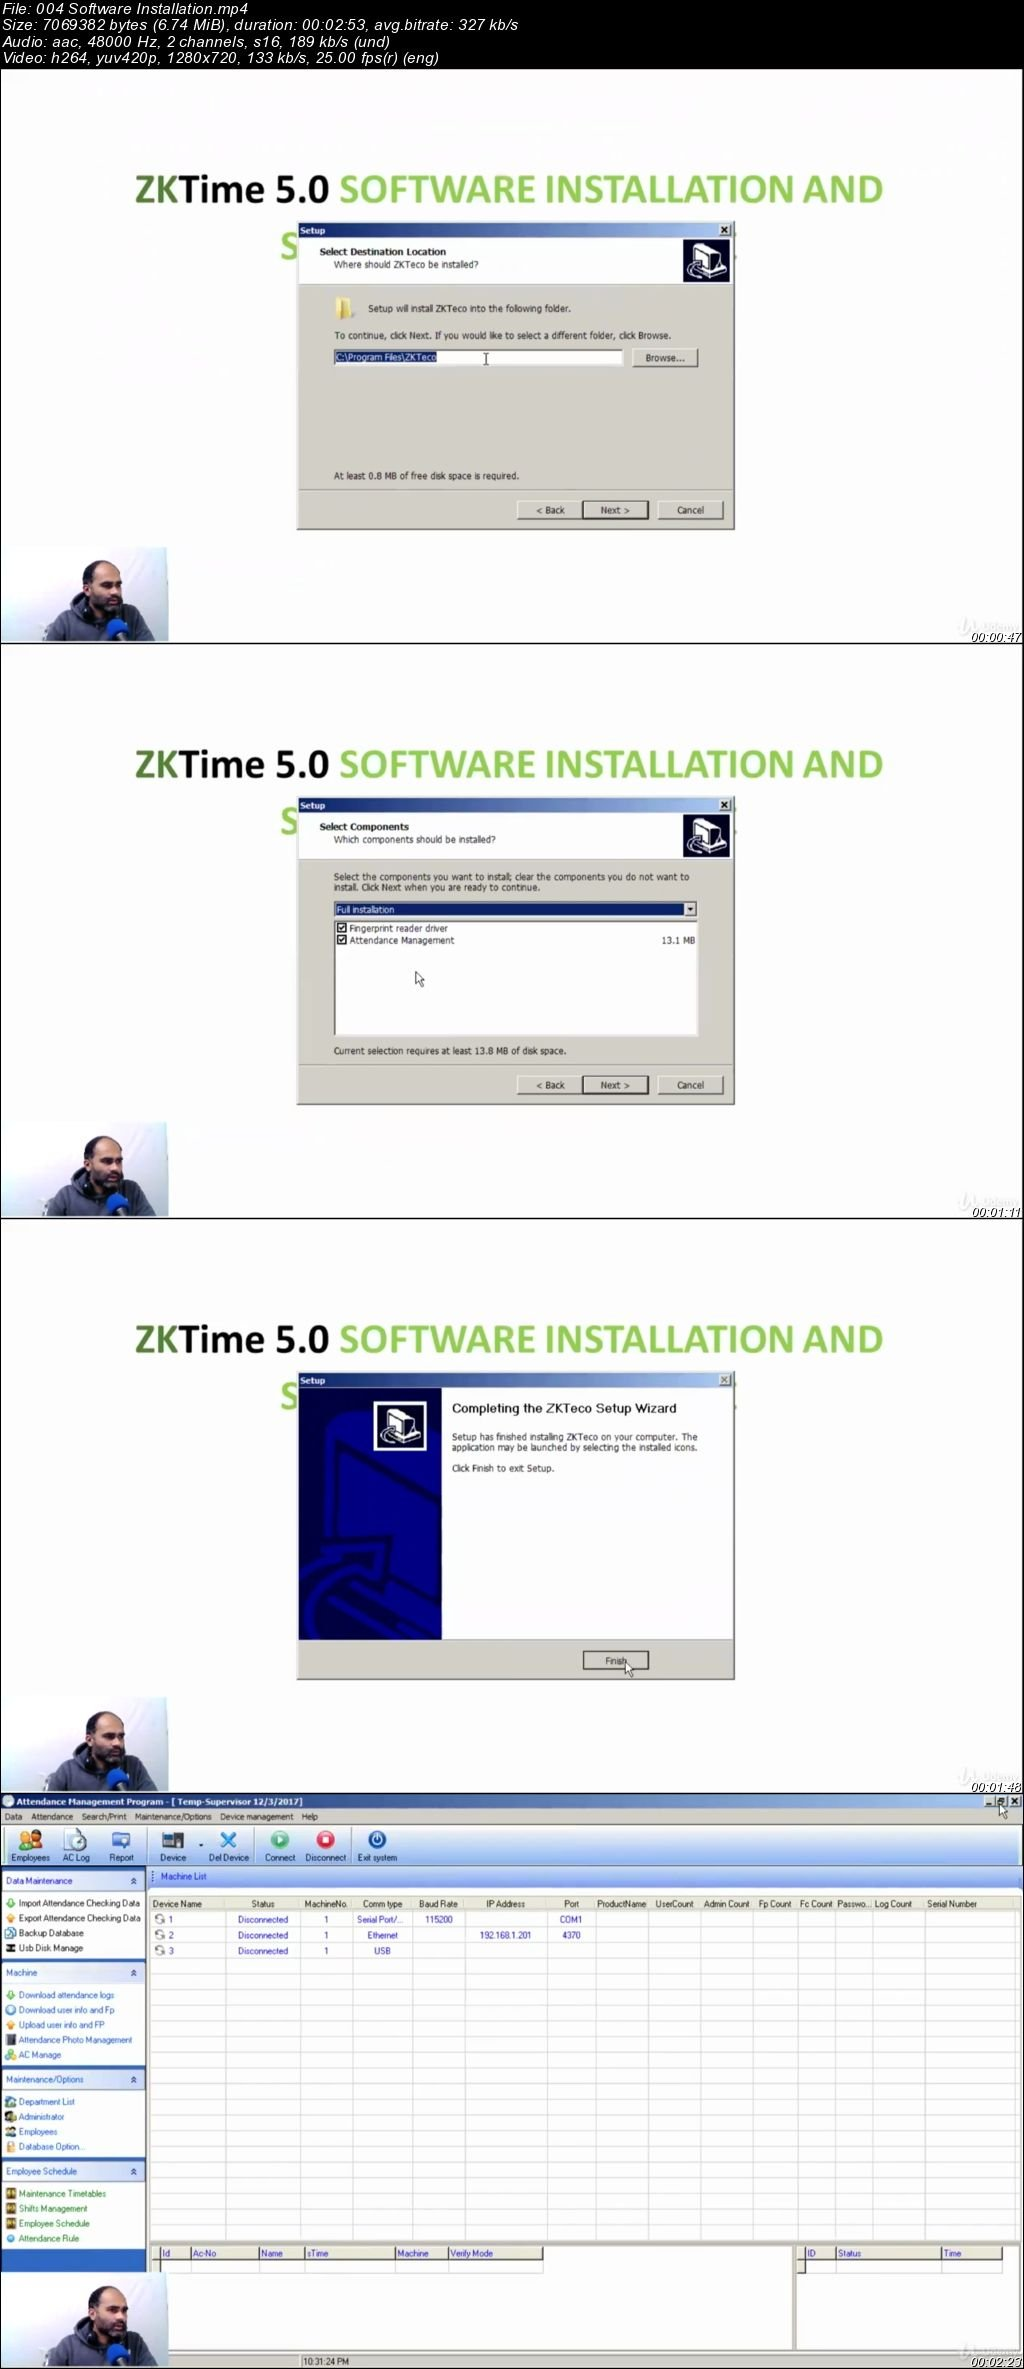 Download Free Time and Attendance Software | TimeTrex